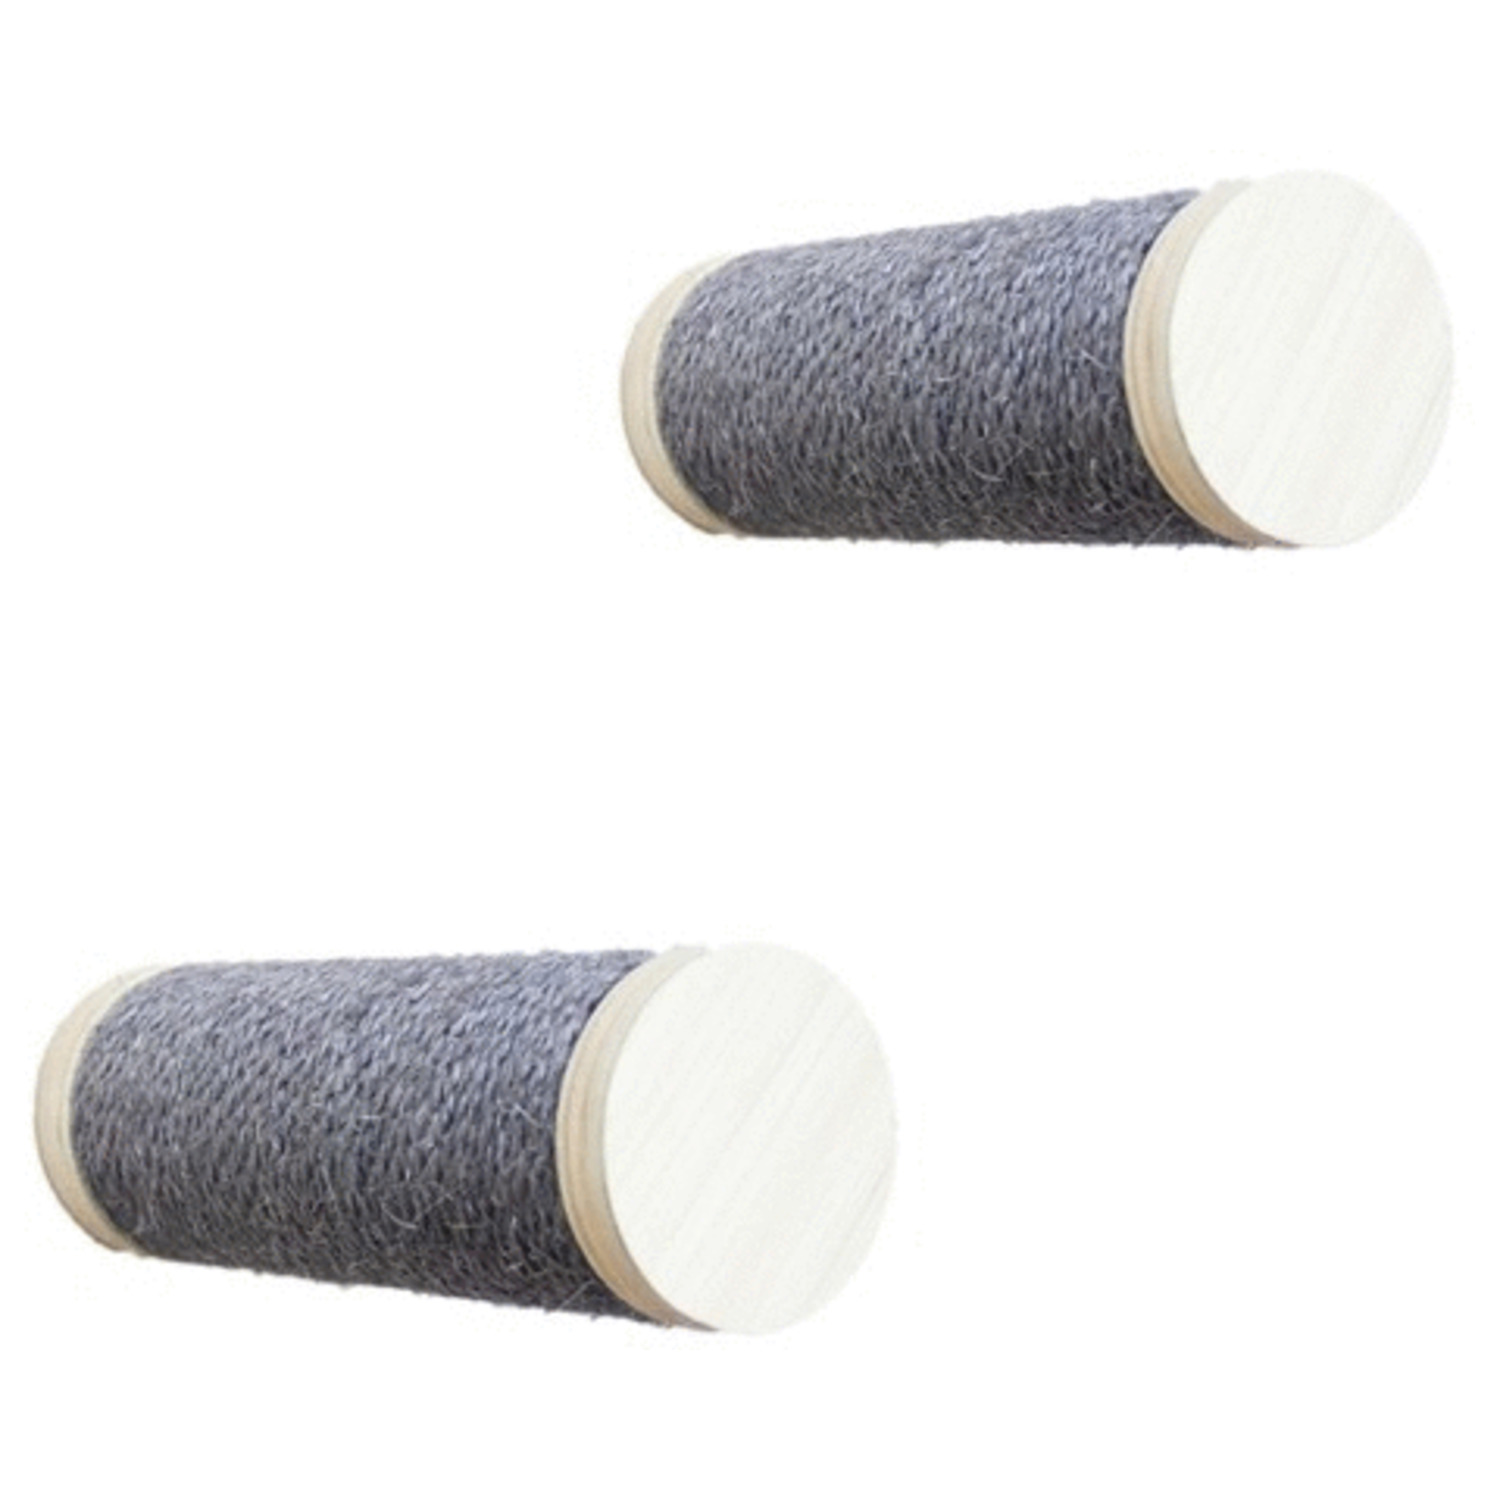 All-For-Paws-Skywalk-Large-Step-Post-Playground-2-Pack-Wandkrabpaal-23×12.5×28-cm-Grijs